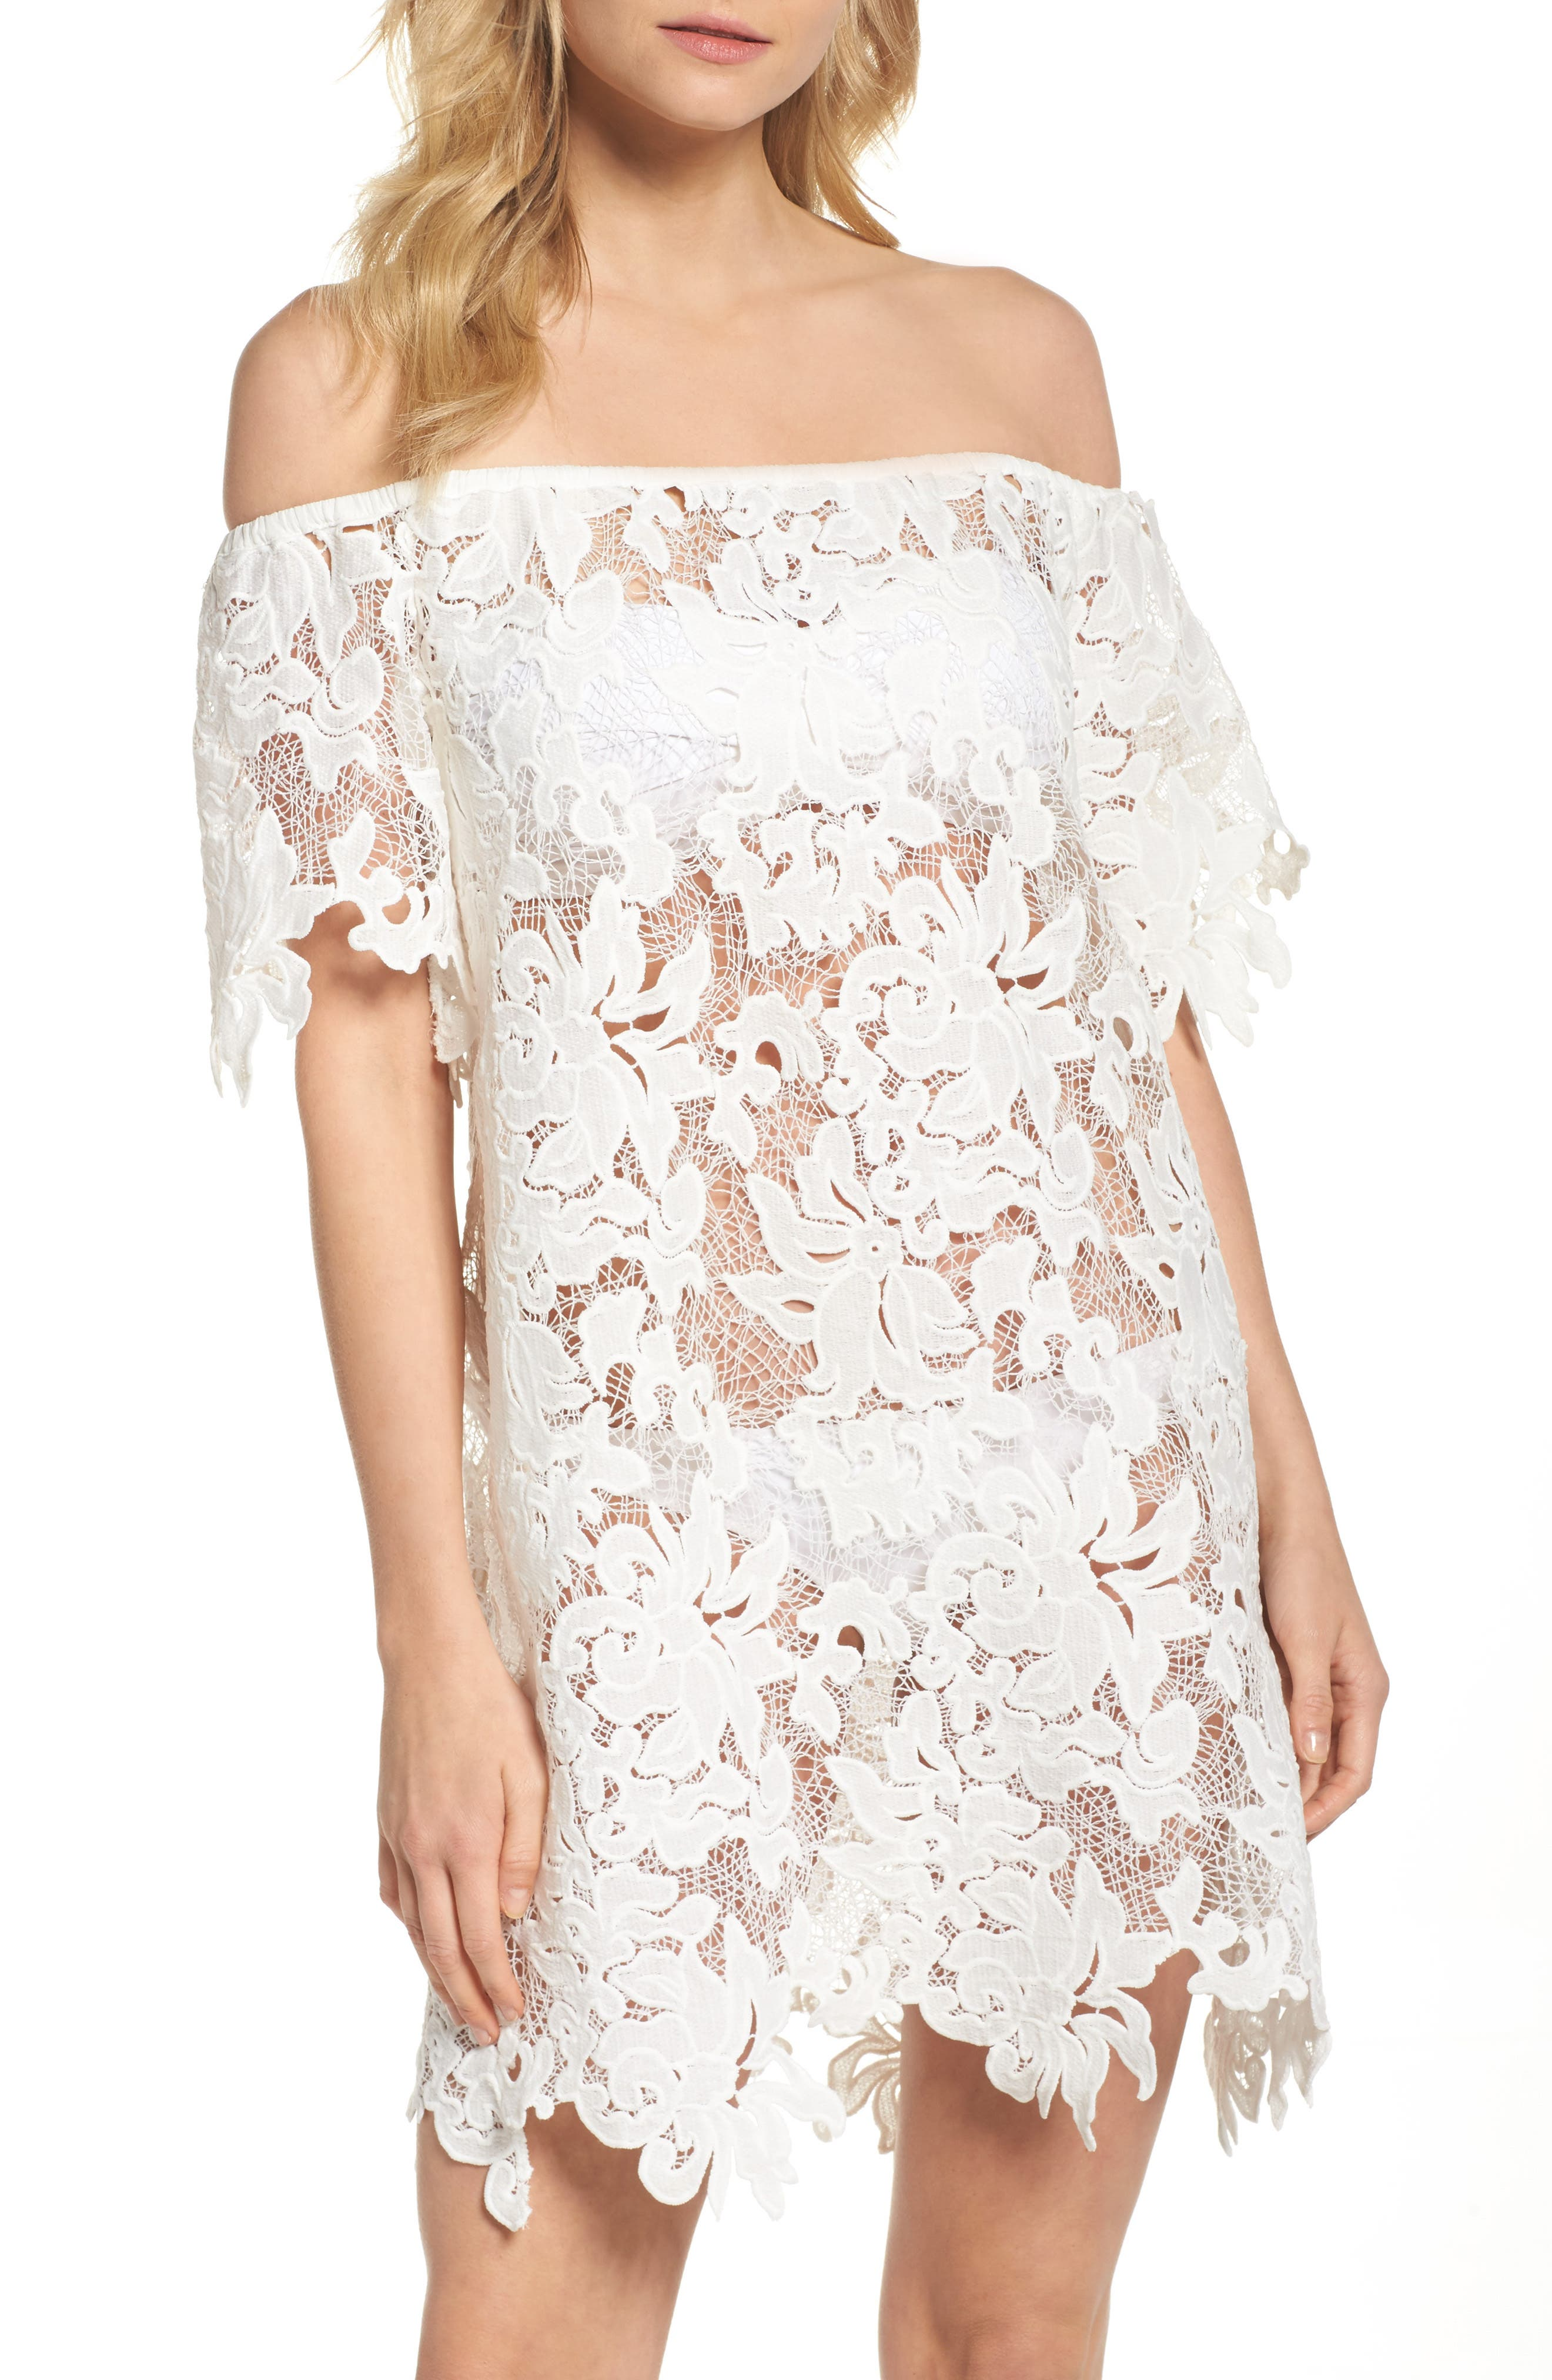 Muche et Muchette Ode Rosette Lace Cover-Up Dress